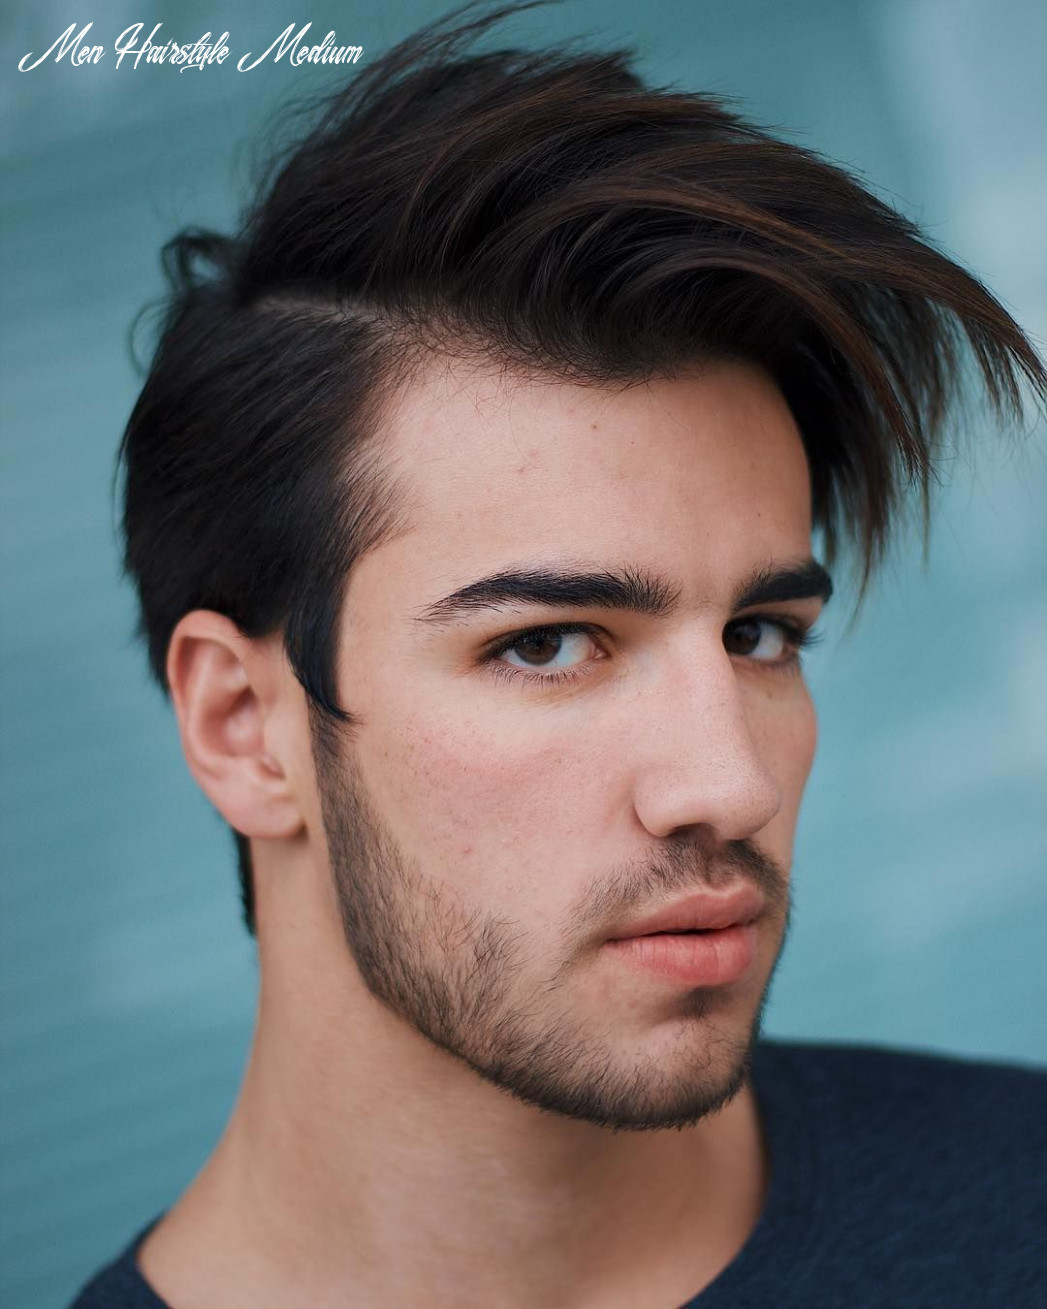 Top 8 elegant haircuts for guys with square faces | mens haircuts